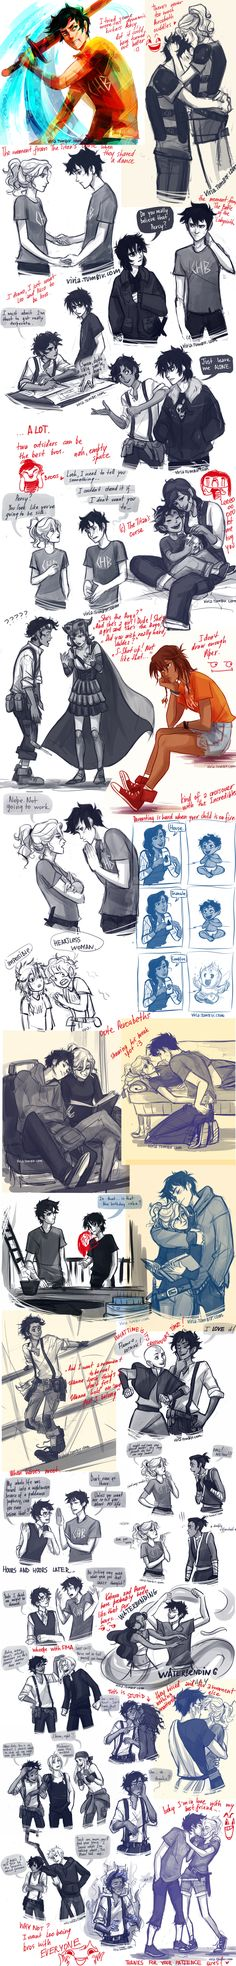 A collage of brilliant Percy Jackson drawings (with a couple crossovers from other shows).